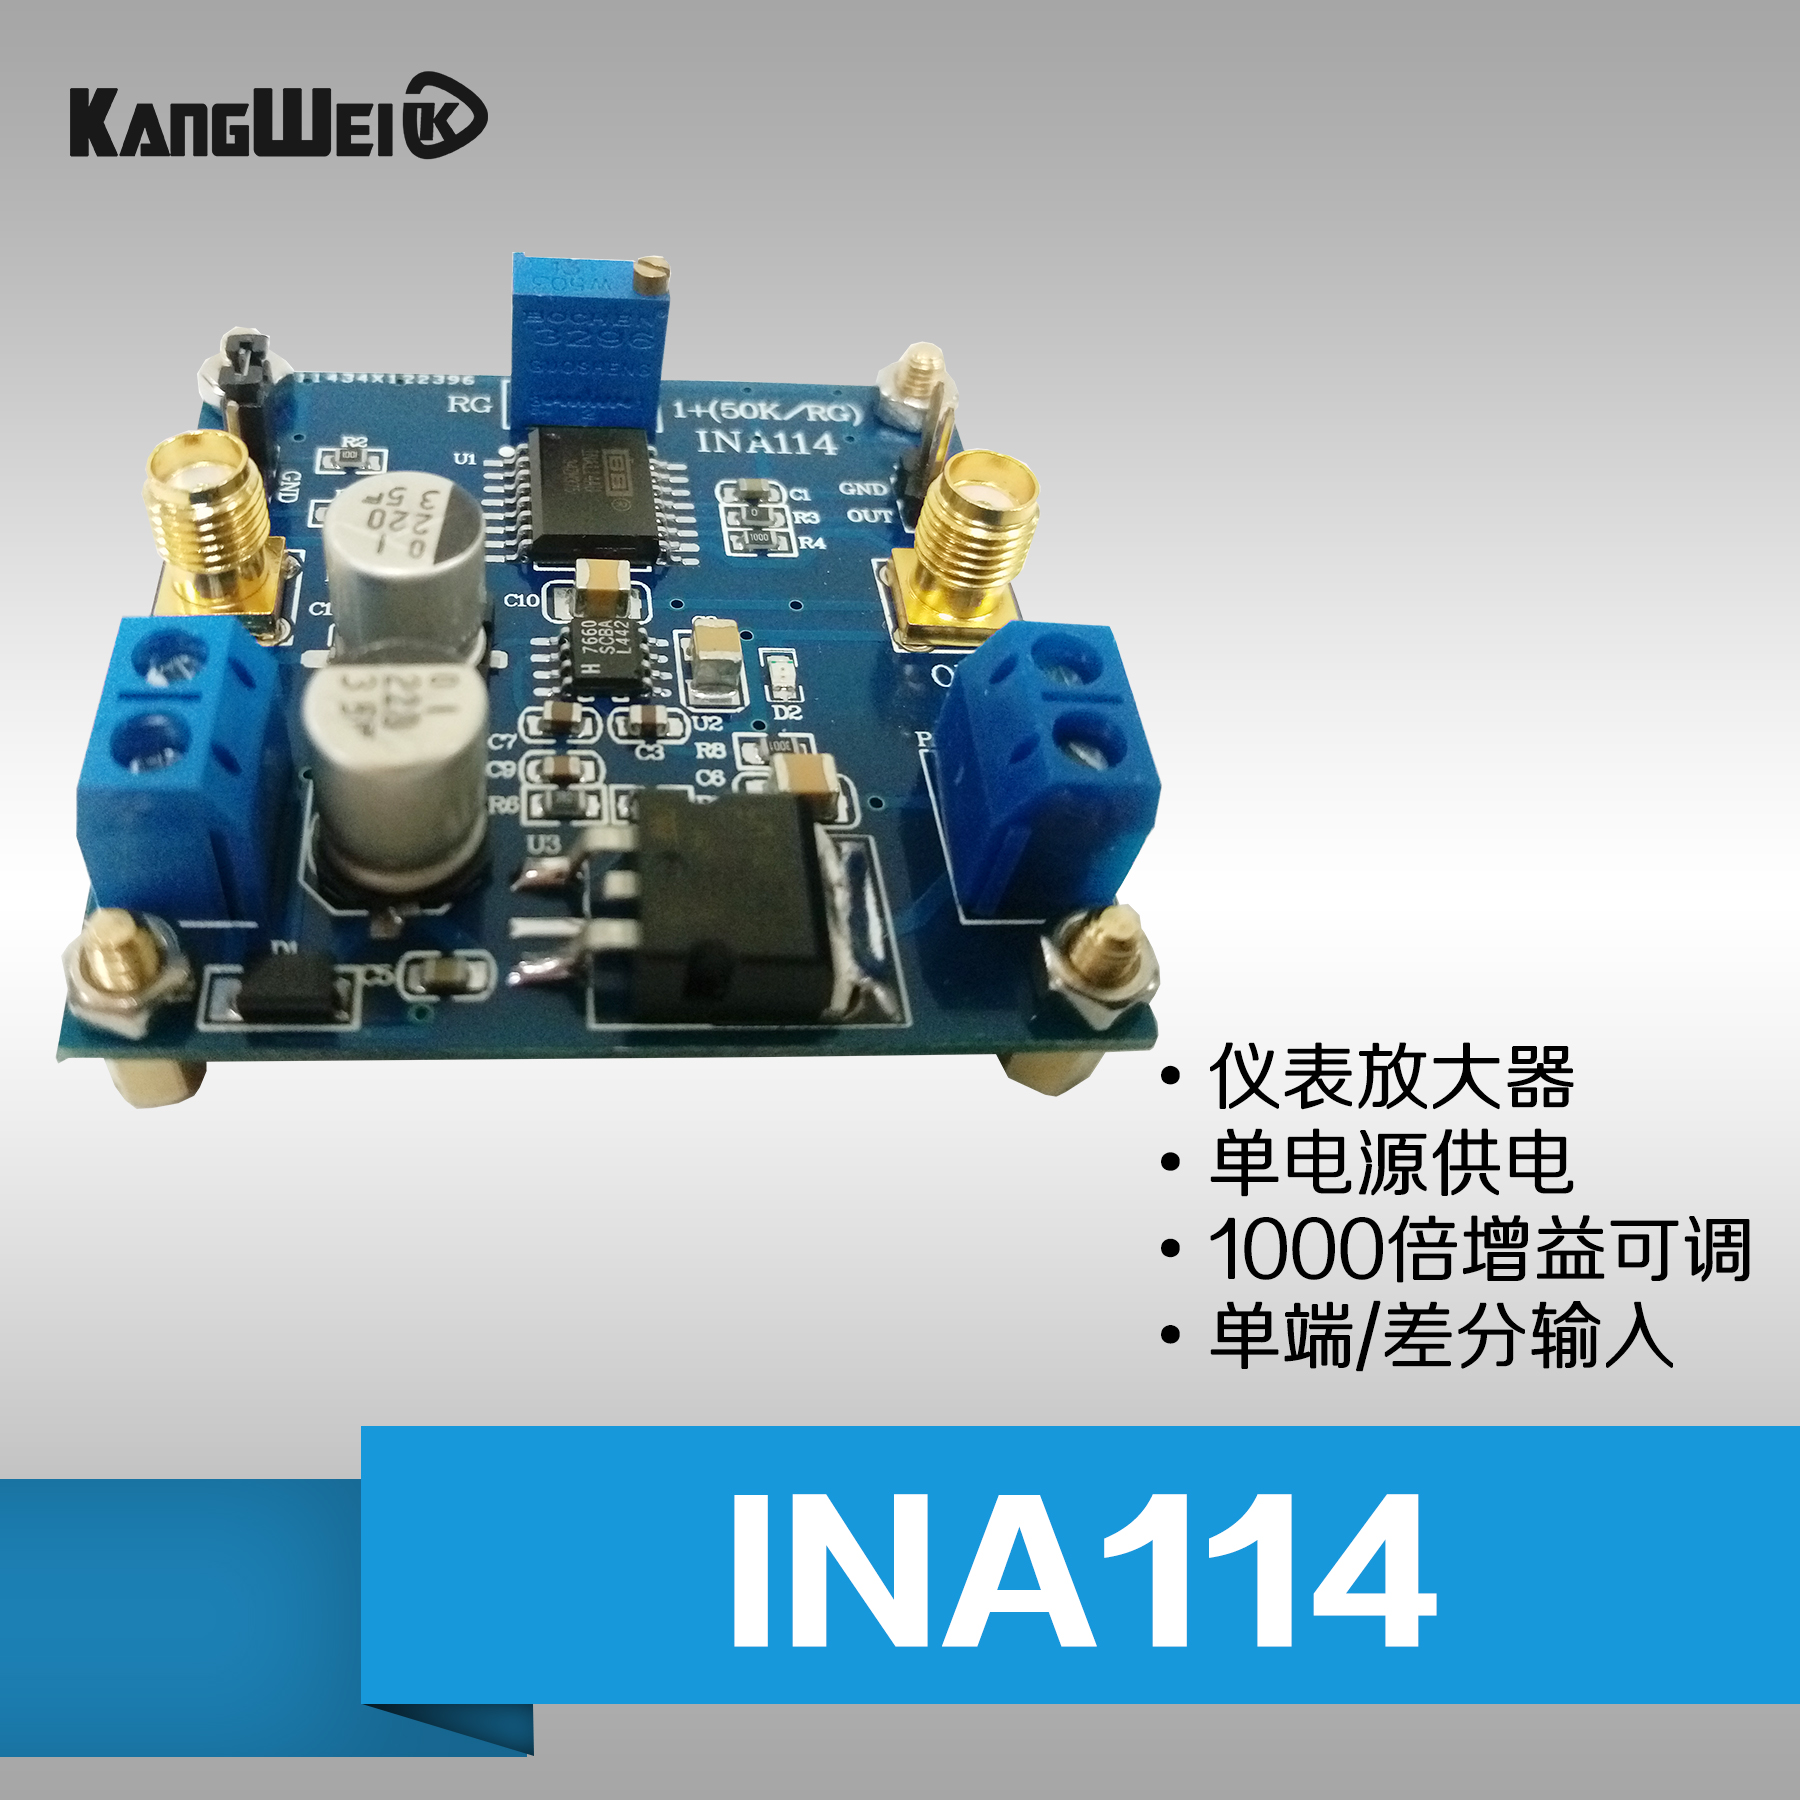 INA114 Meter Amplifier 1000 Times Gain Adjustable Single Power Supply Single Ended / Differential Input подшипники скольжения ina axk1226